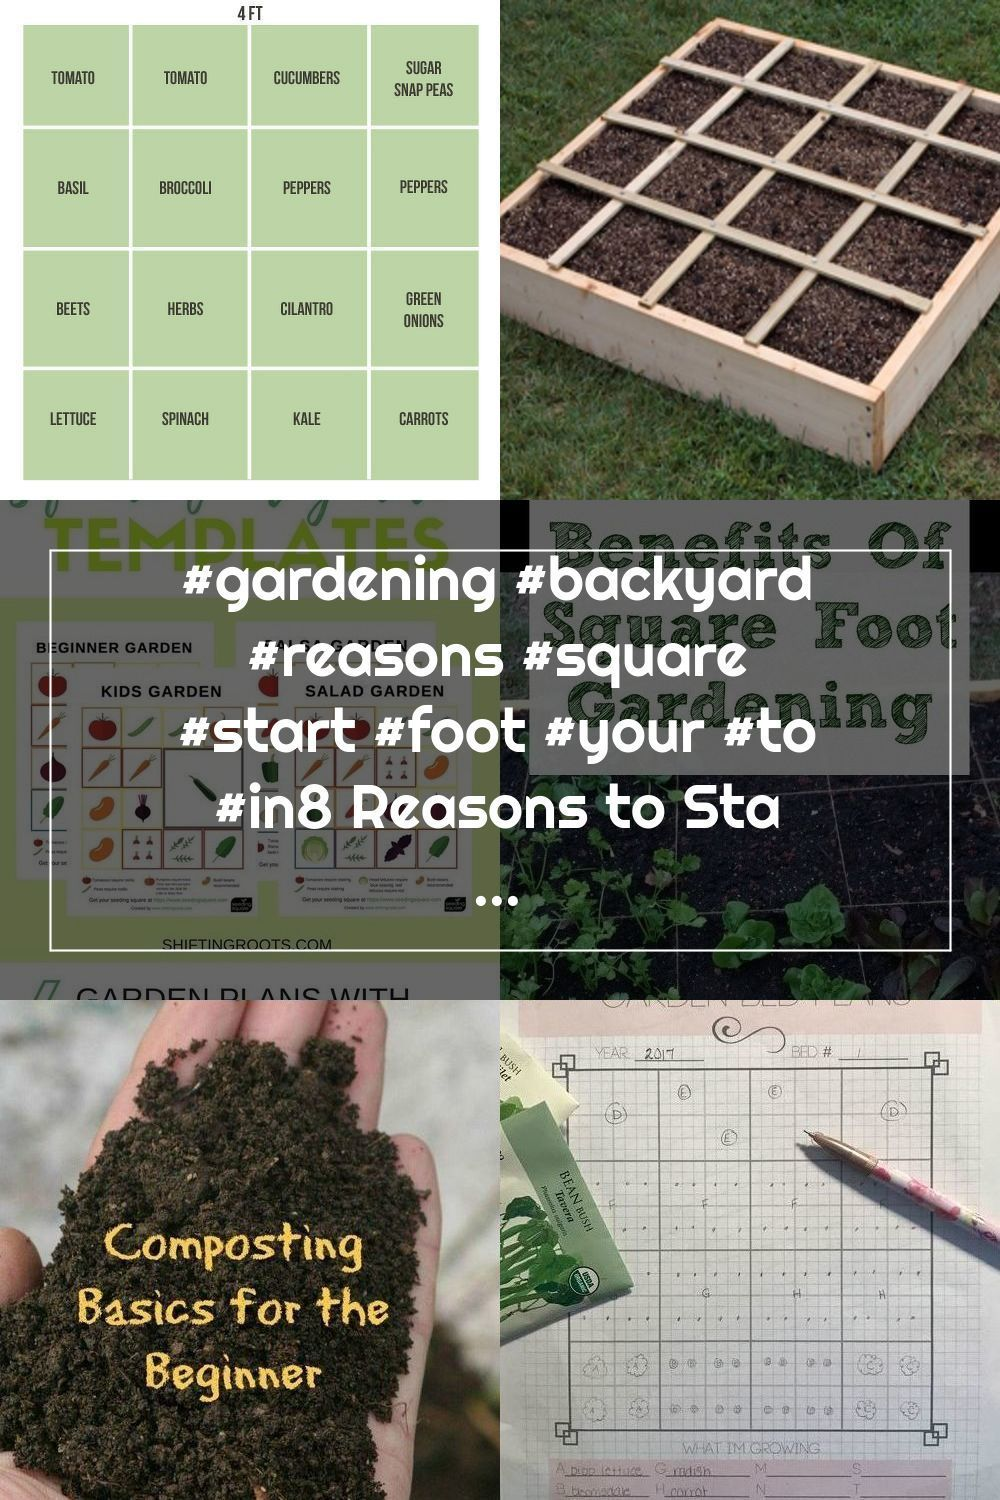 4eb35ecb80c5f271c29cf1e7f1628b35 - Garden Time's Square Foot Gardening Potting Soil